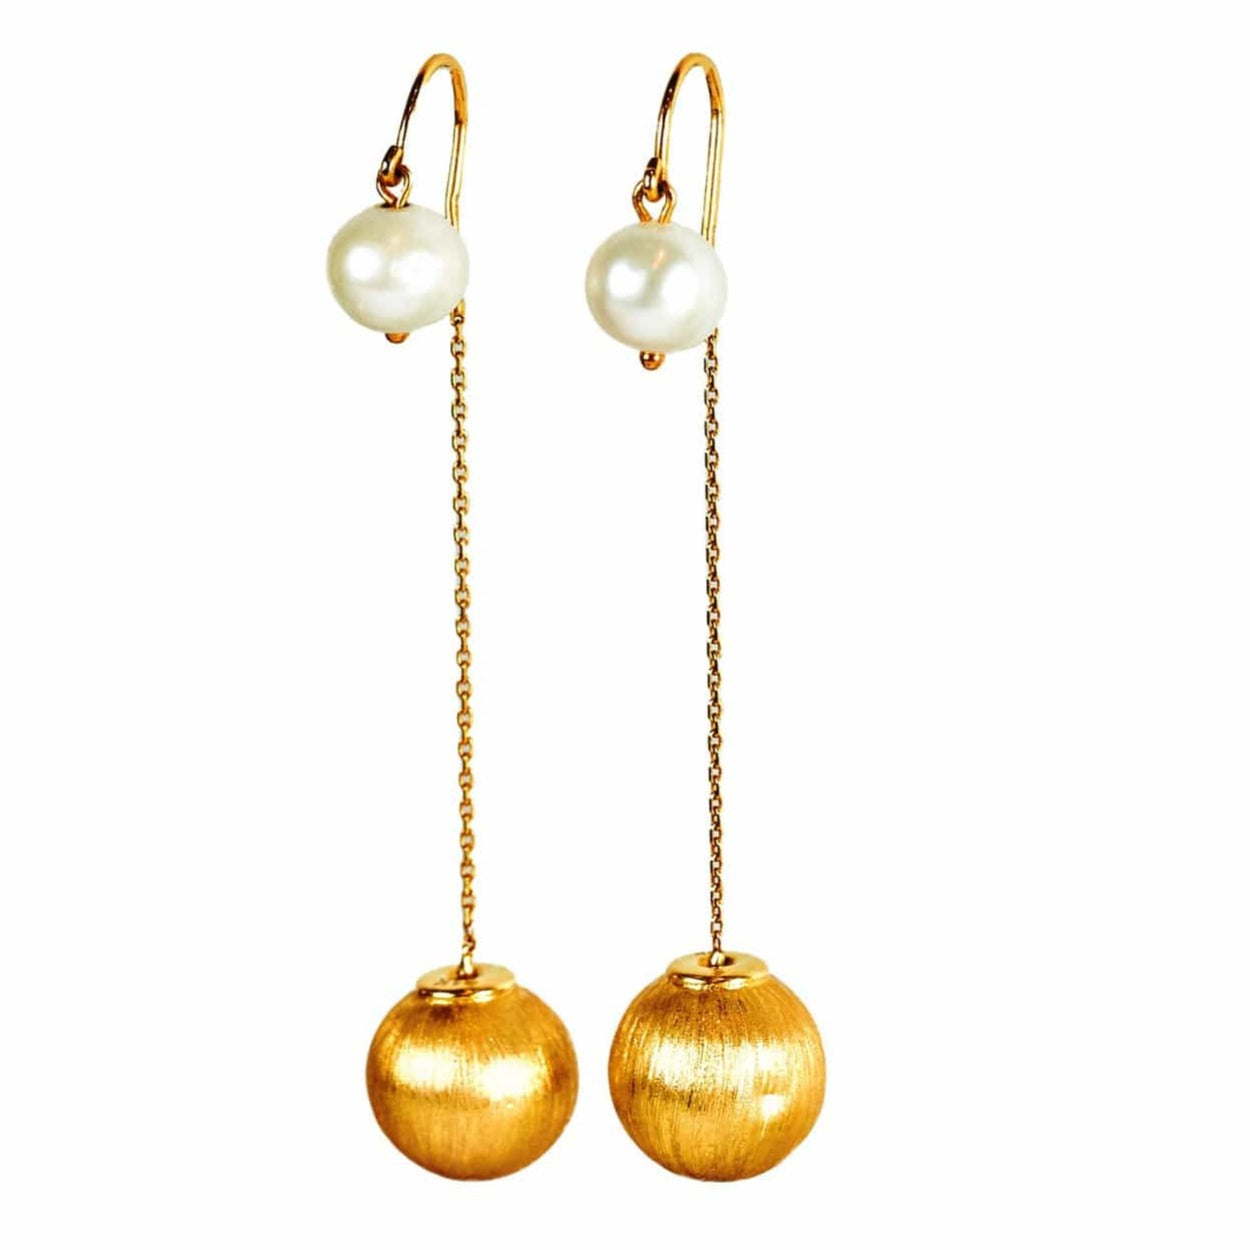 Ball & Chain Pearl Drop Earrings